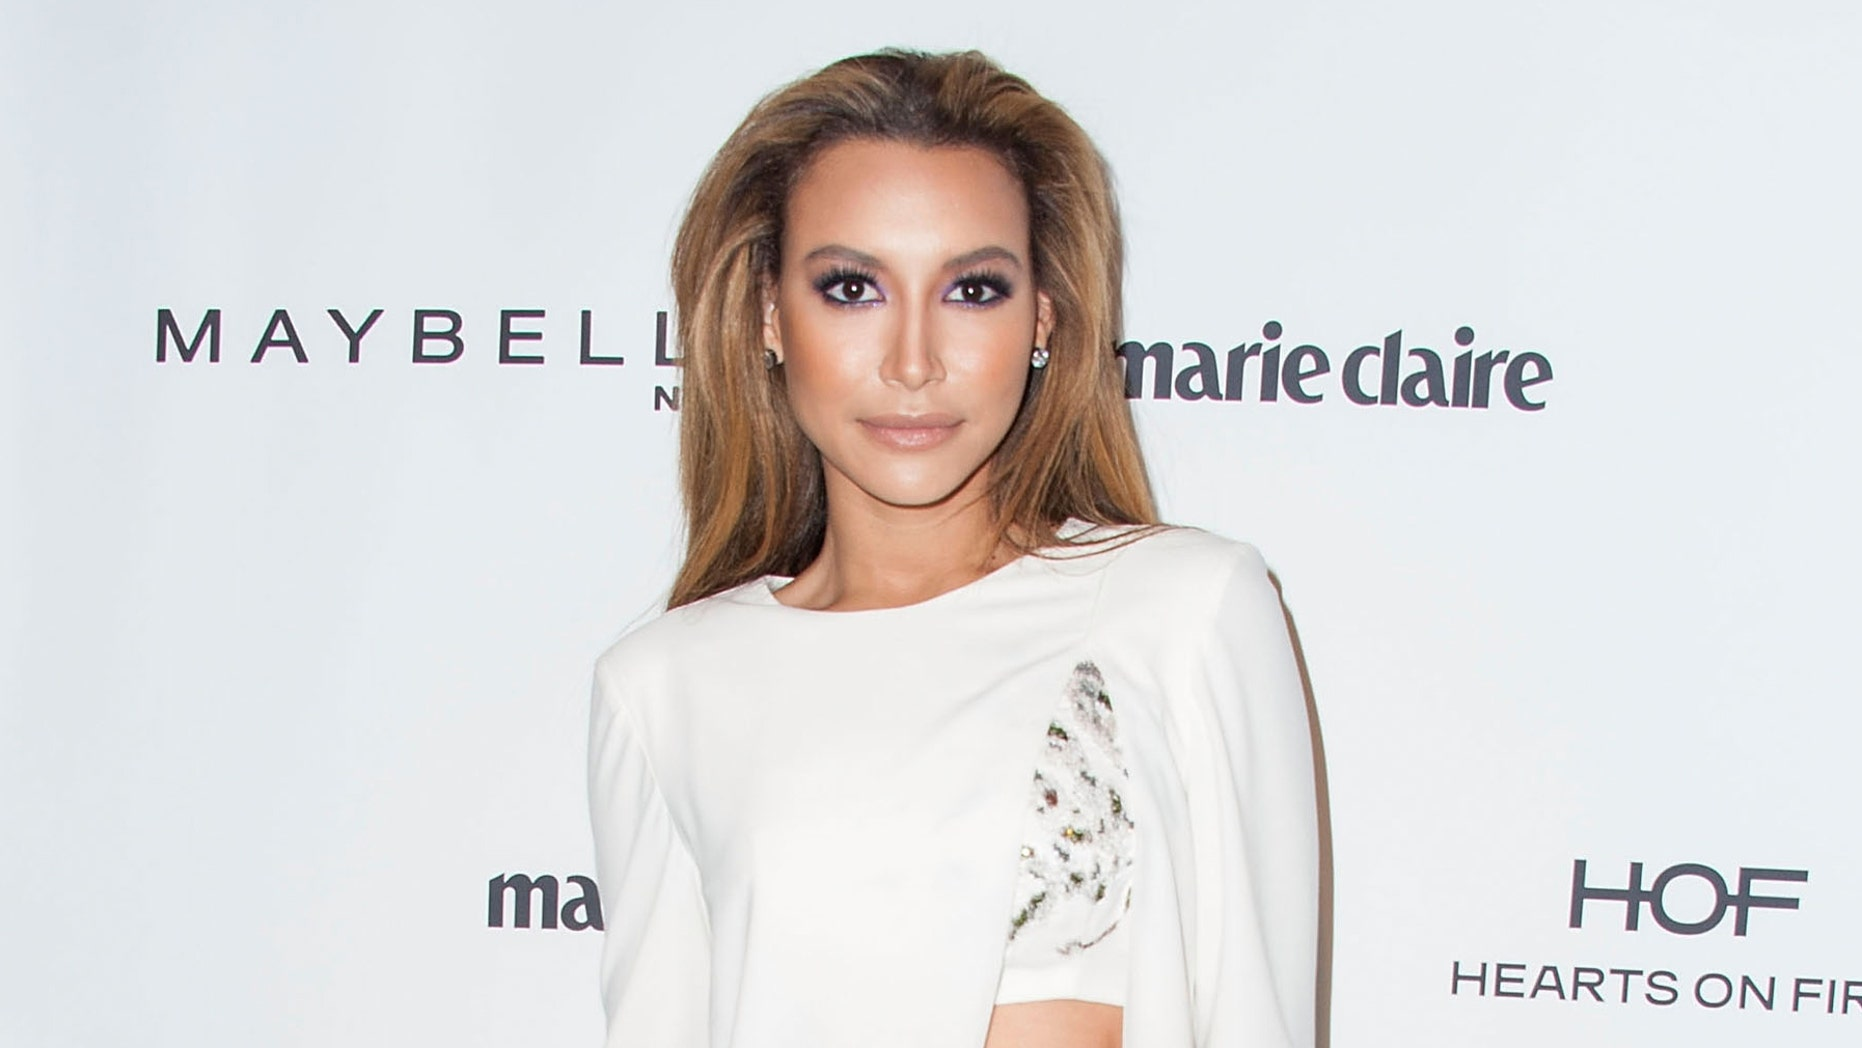 WEST HOLLYWOOD, CA - APRIL 08:  Actress Naya Rivera arrives at the Marie Claire's Fresh Faces Party at Soho House on April 8, 2014 in West Hollywood, California.  (Photo by Valerie Macon/Getty Images)